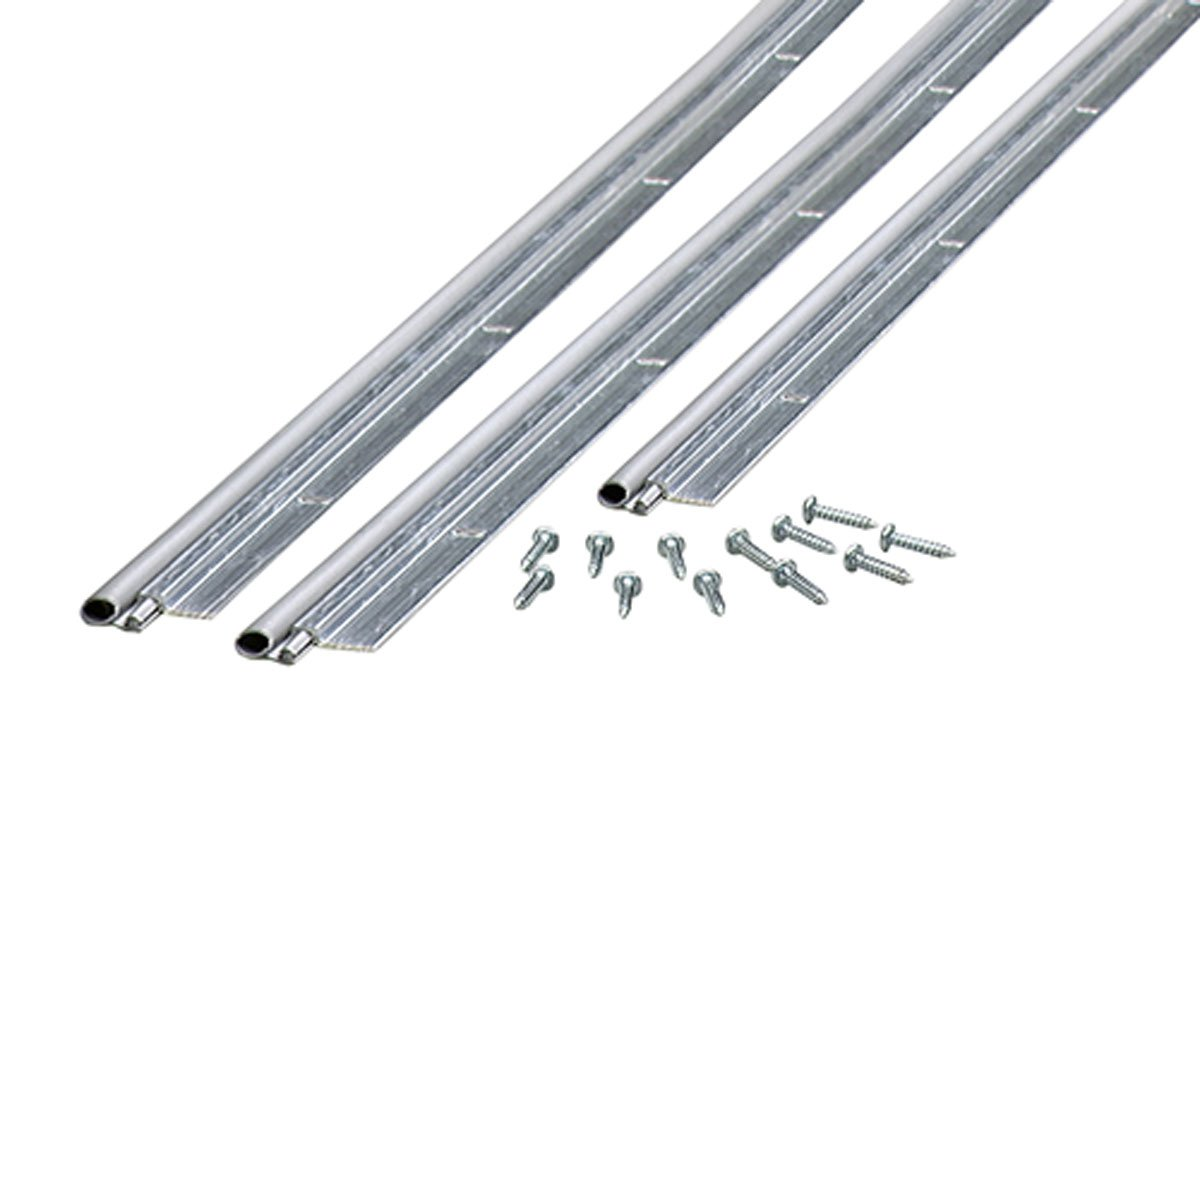 M-D Building Products 01438 36-Inch by 84-Inch Flat Profile Door Jamb Weather-strip Kit with Screws